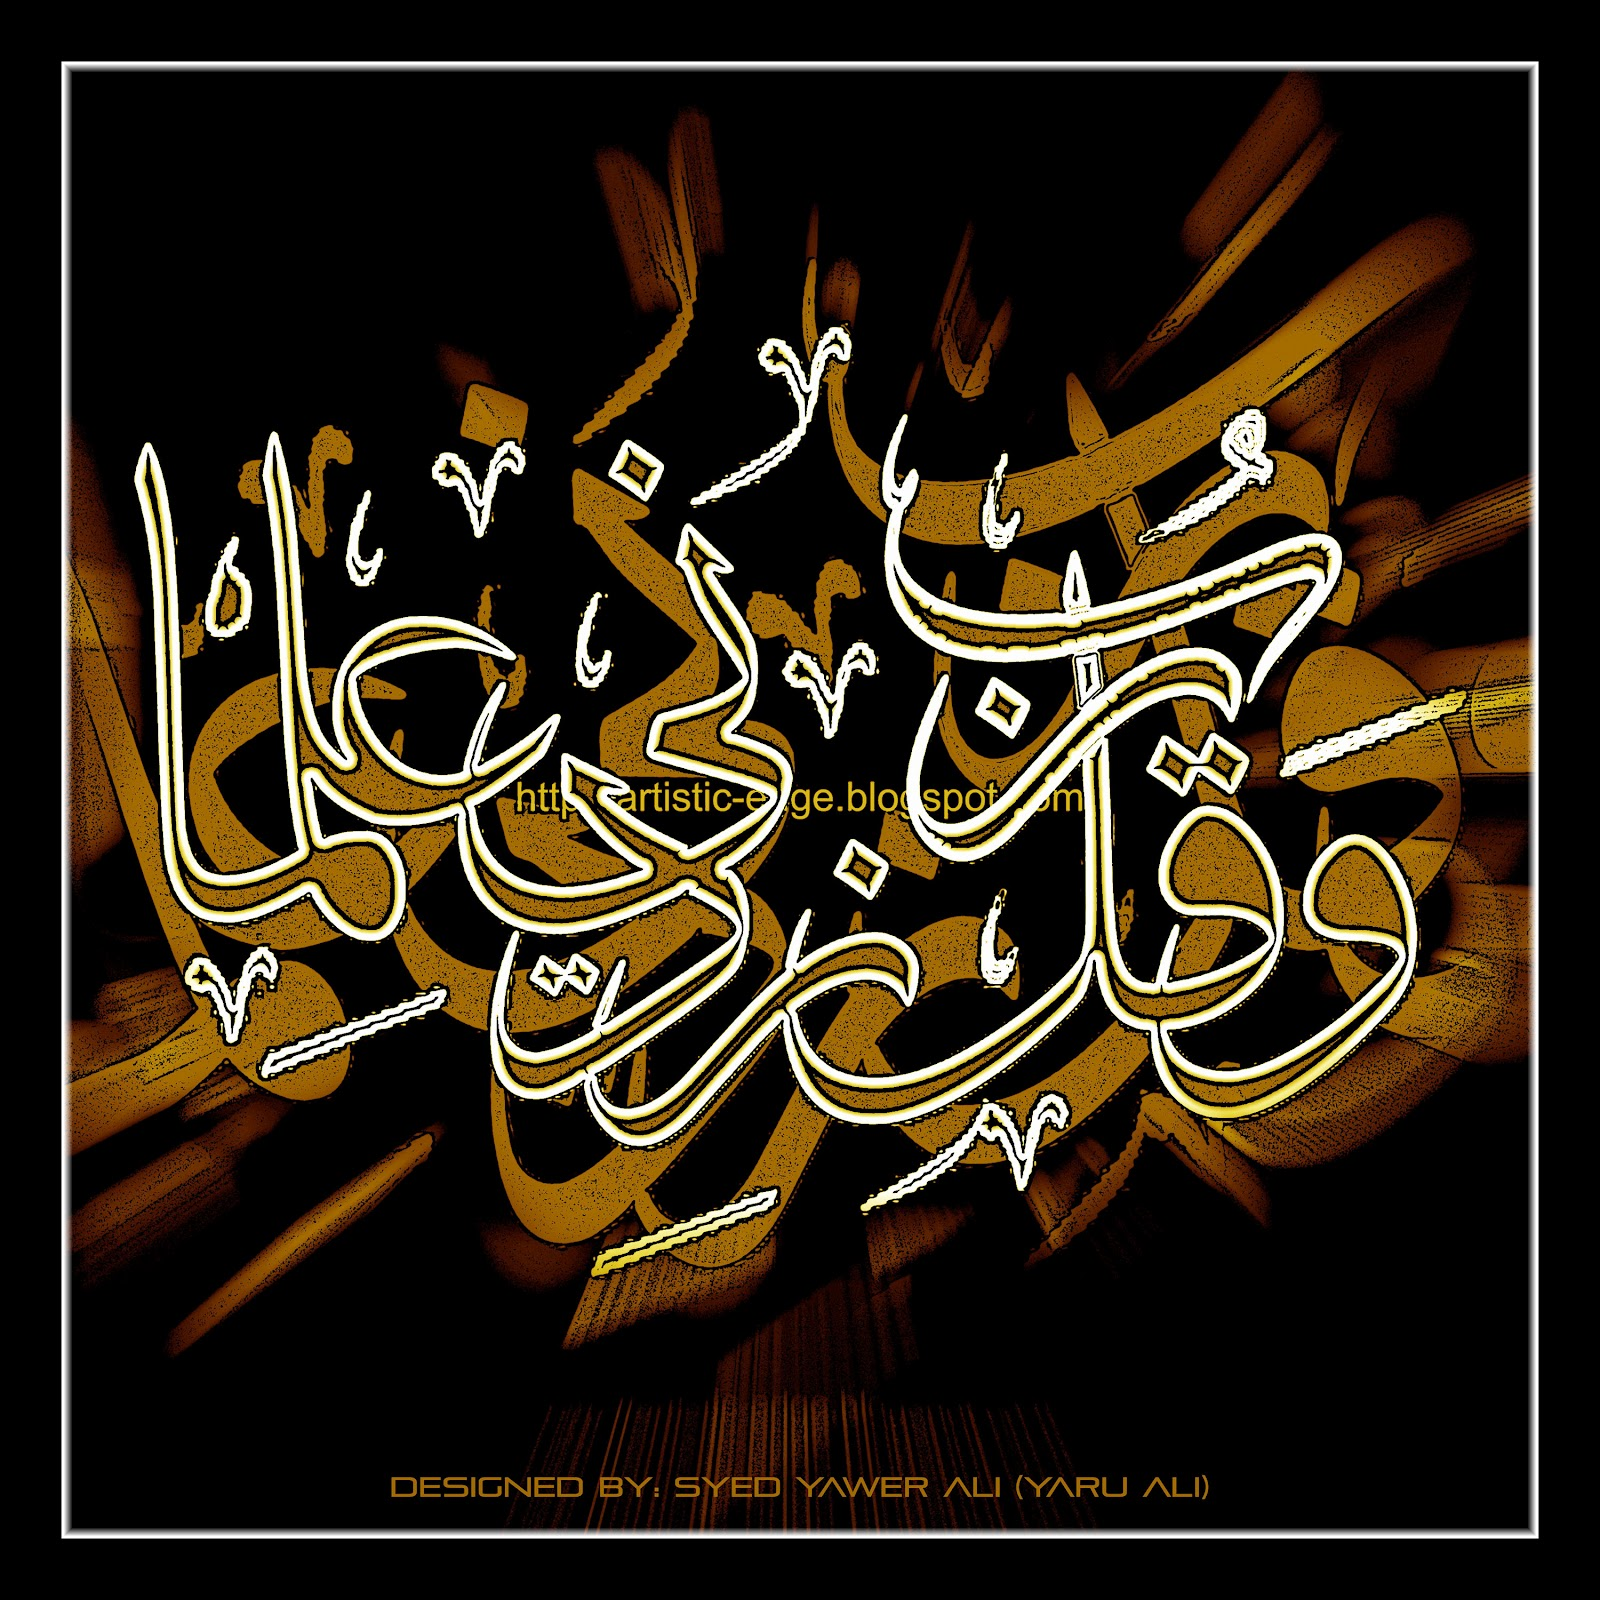 Wallpaper Qurani Ayat Wallpapers: calligraphy ayat